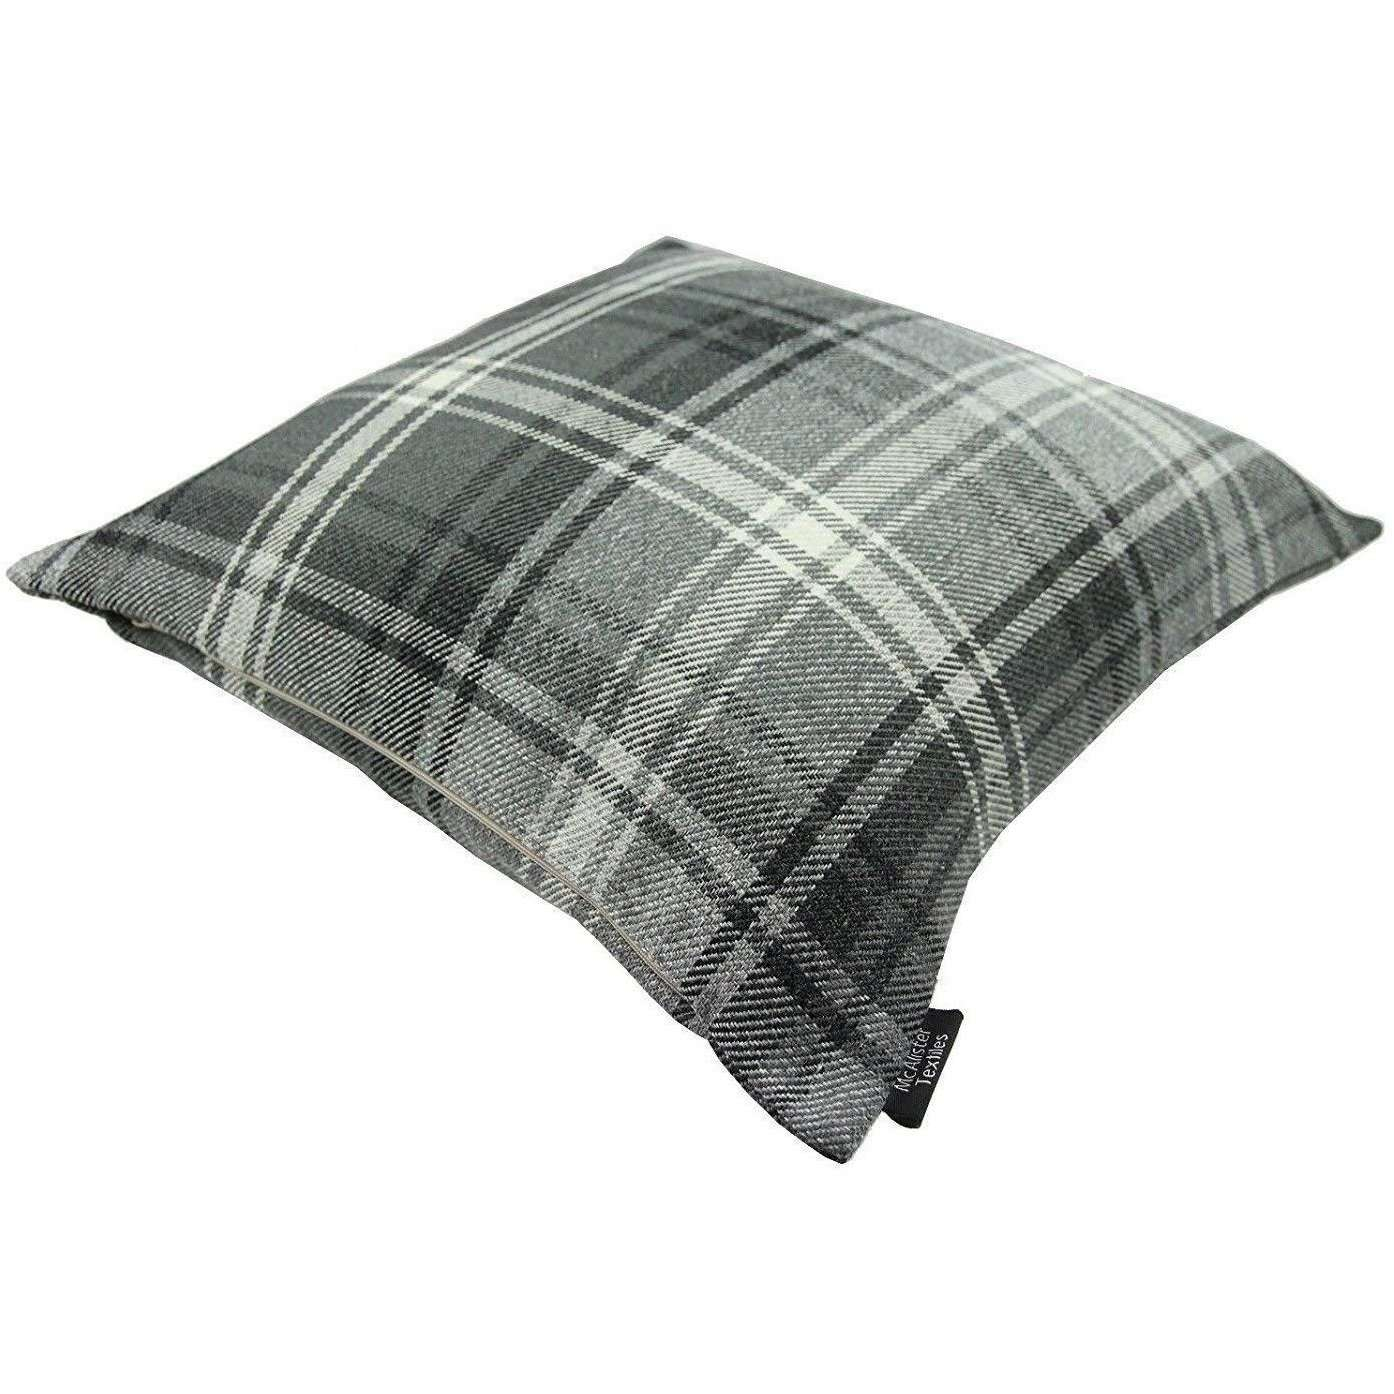 McAlister Textiles Angus Charcoal Grey Tartan 43cm x 43cm Cushion Sets Cushions and Covers